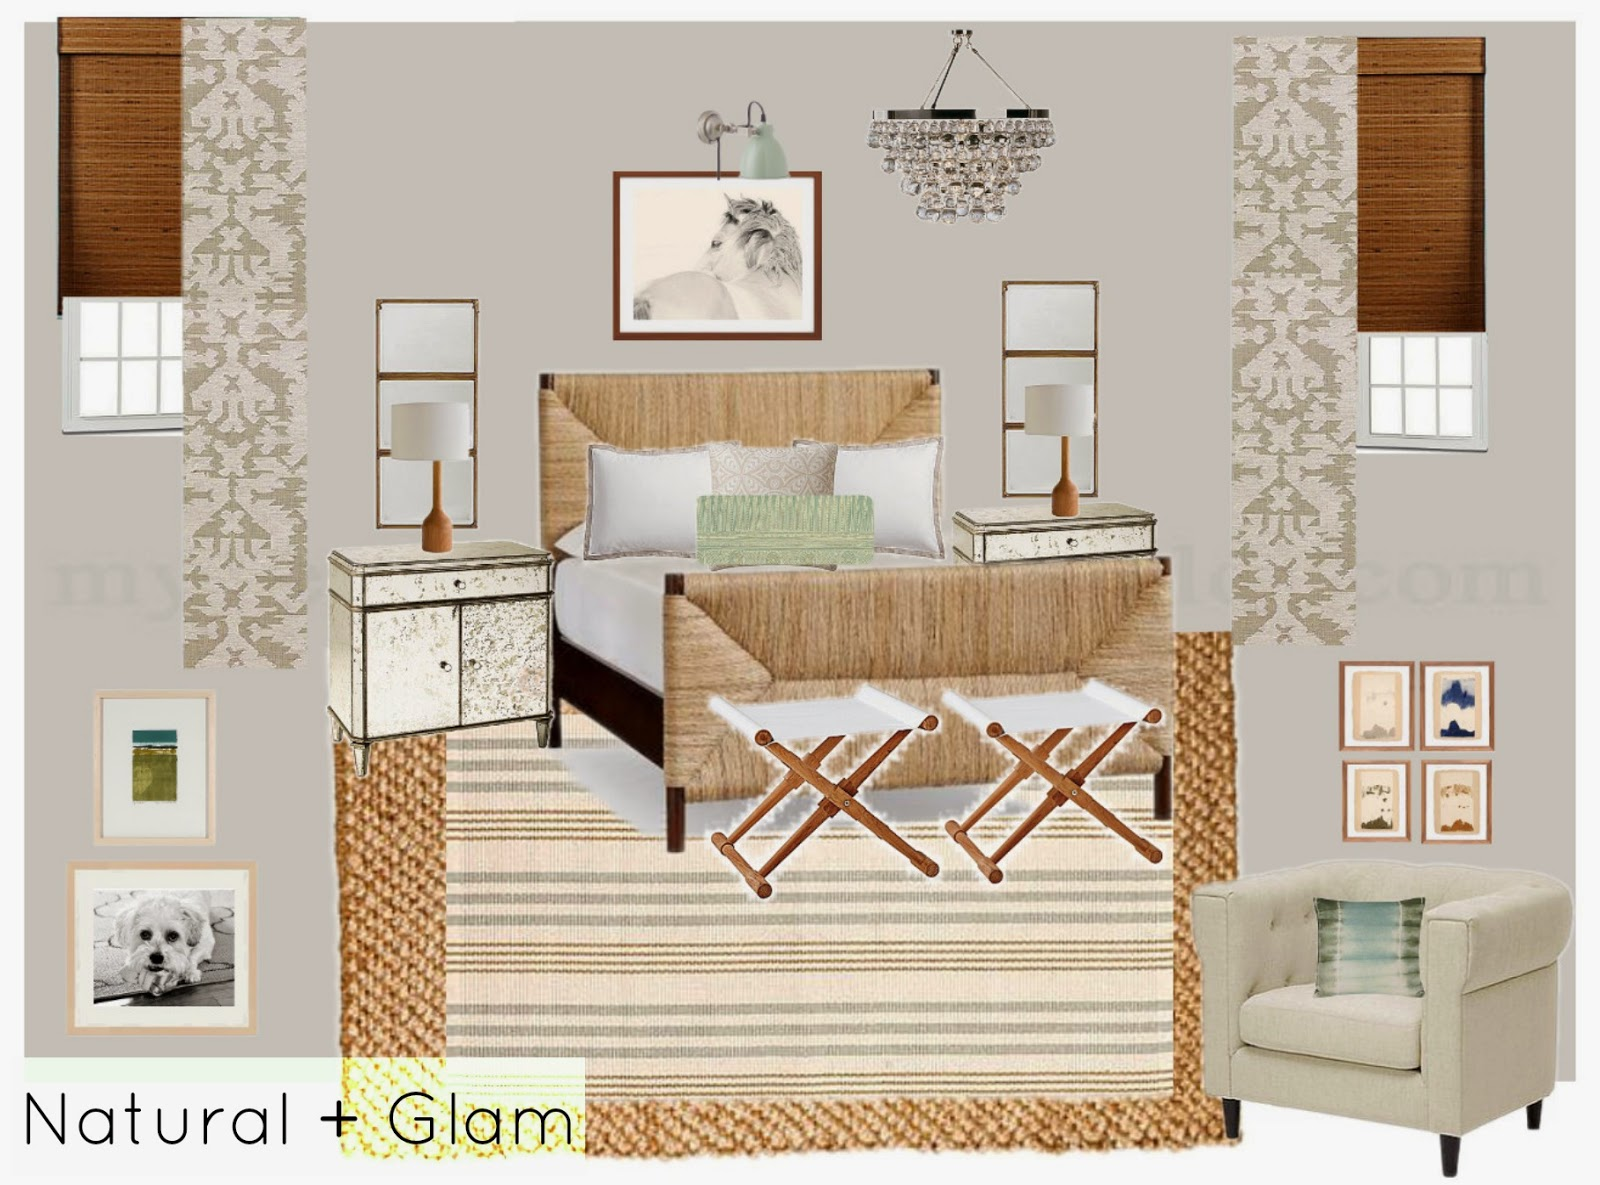 Powell brower at home new project Design your bedroom from scratch